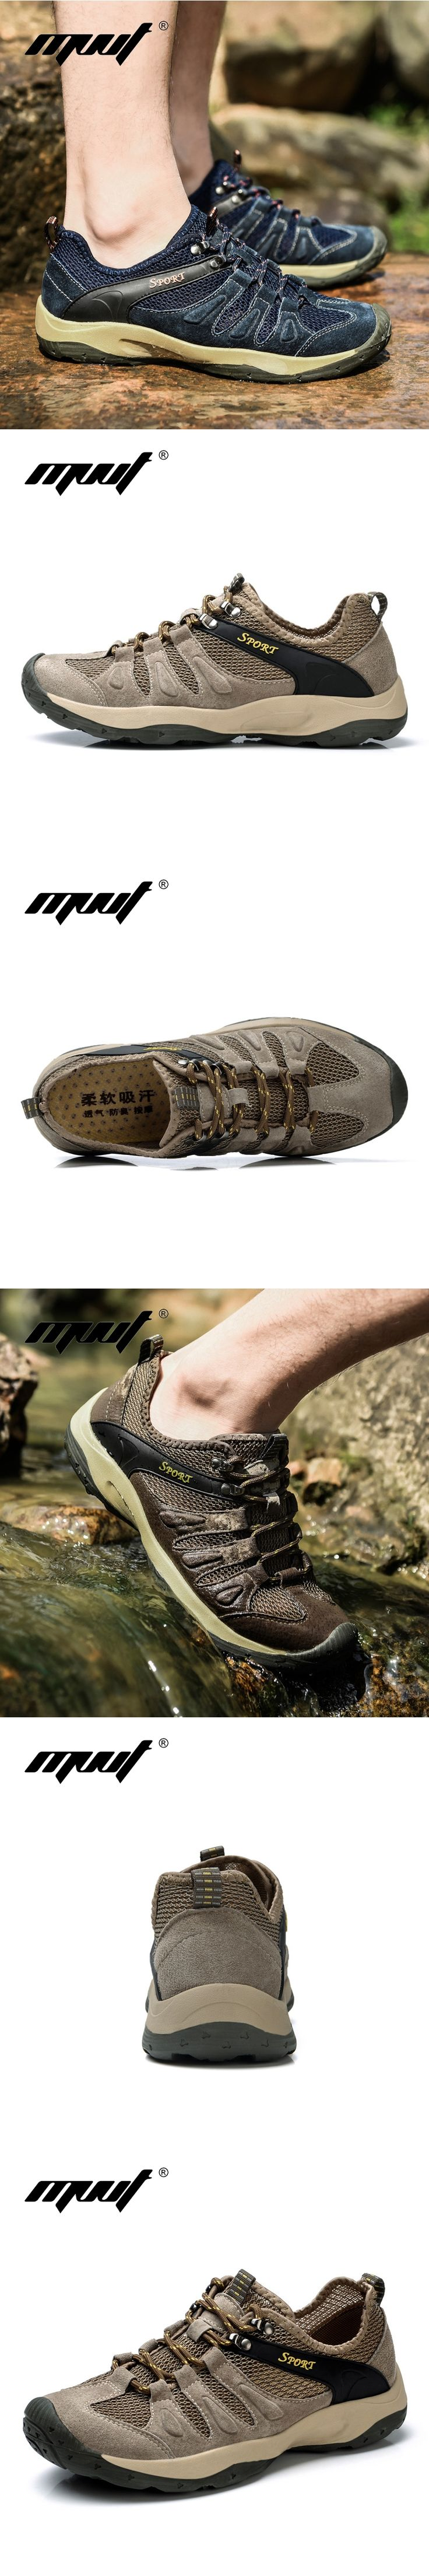 Leather And Mesh Breathable Men Hiking Shoes Men's Outdoor Water Shoes Quick Drying Aqua Shoes Men Sneakers Walking Shoes